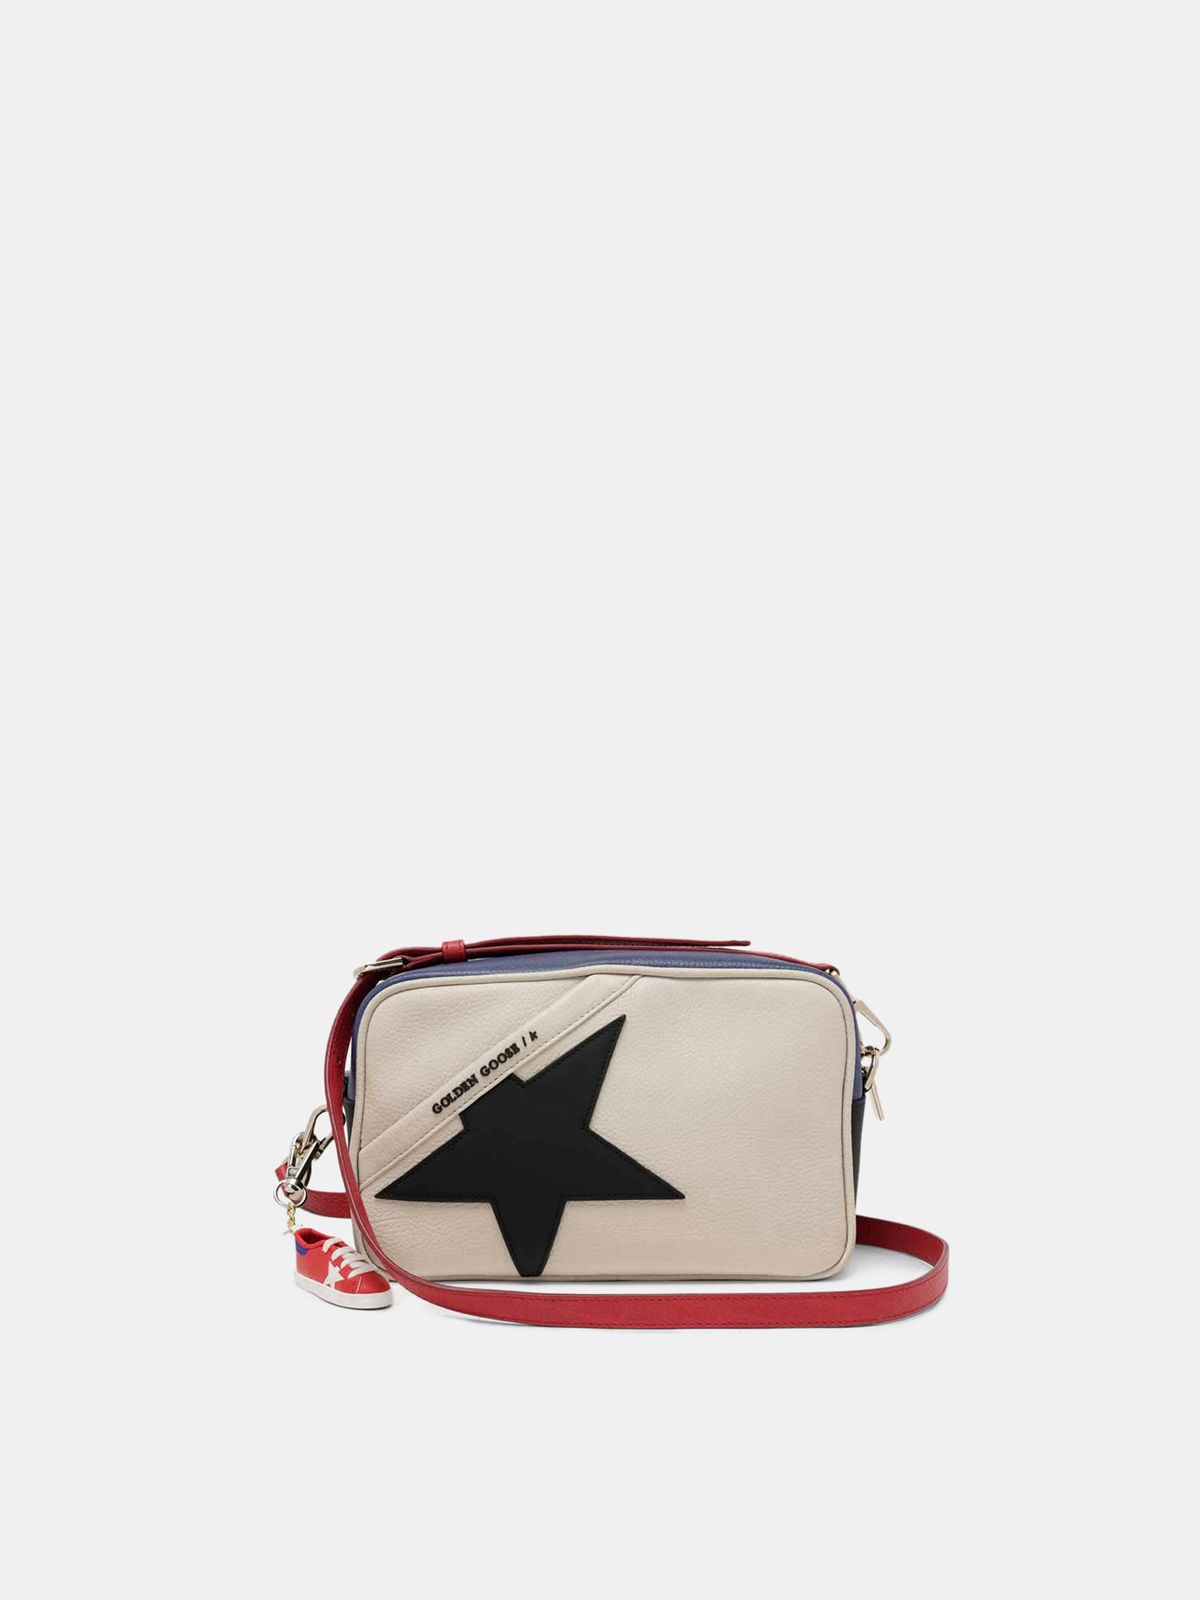 Star Bag made of pebbled leather with black star